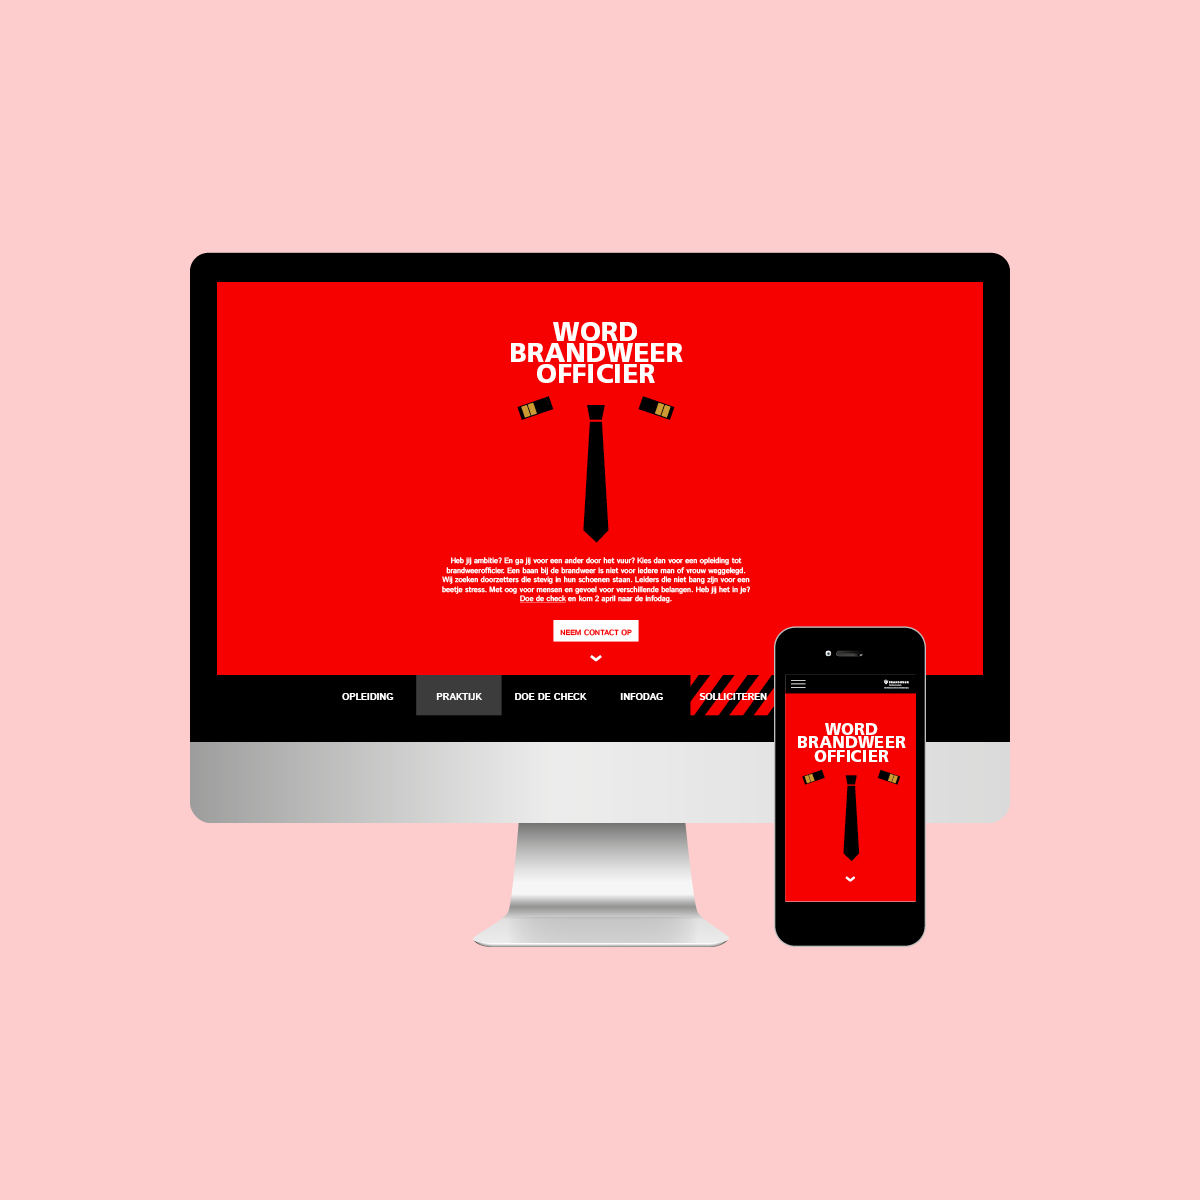 IFV | Webdesign | Creative Digital Agency Puntkomma Nijmegen